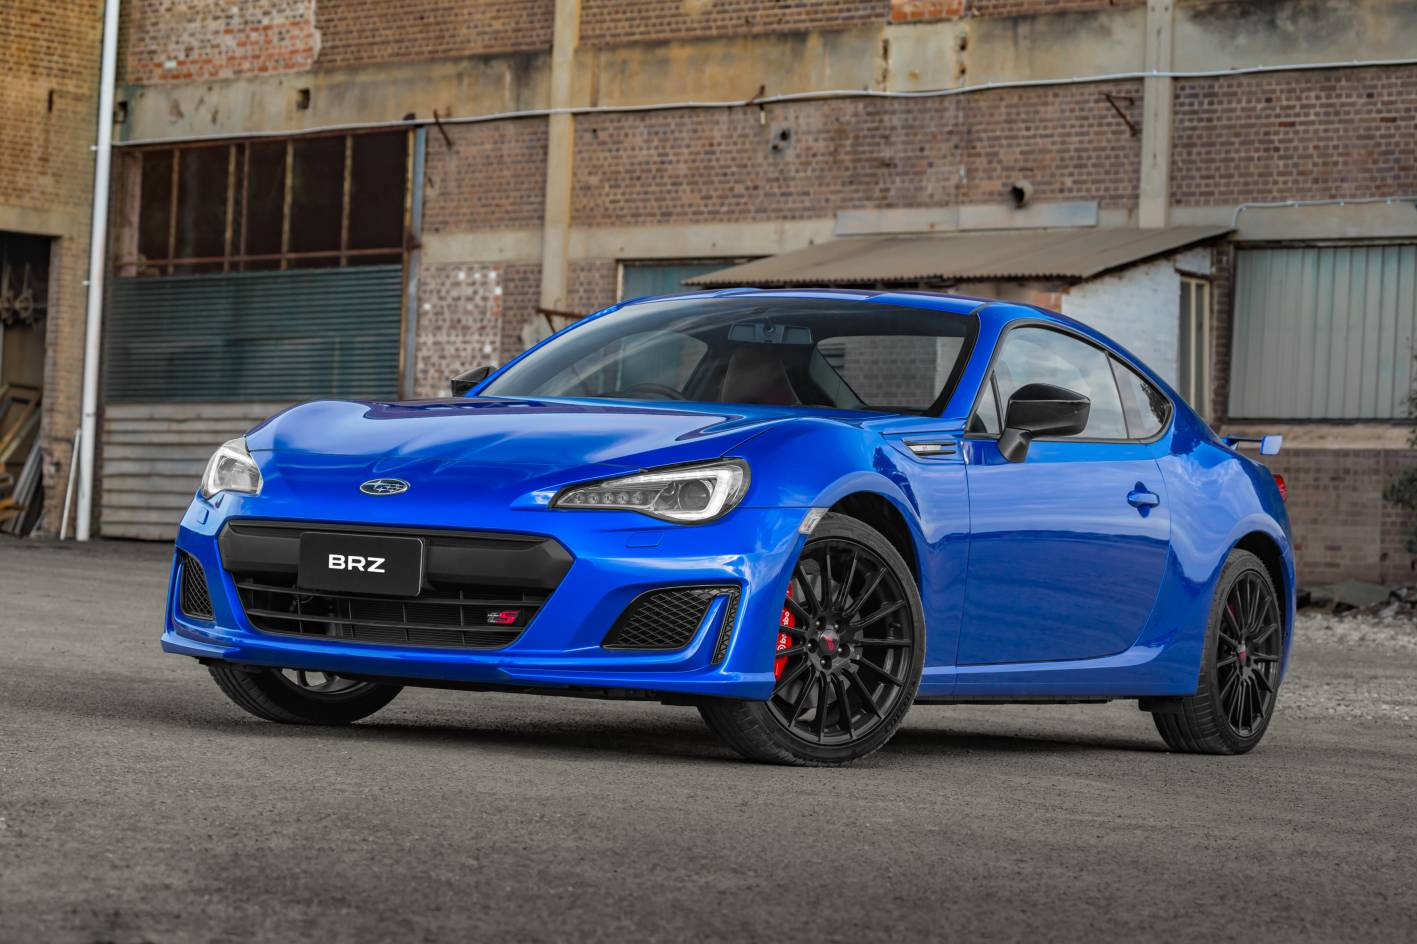 subaru brz ts launched as new range topper with sti goodies. Black Bedroom Furniture Sets. Home Design Ideas